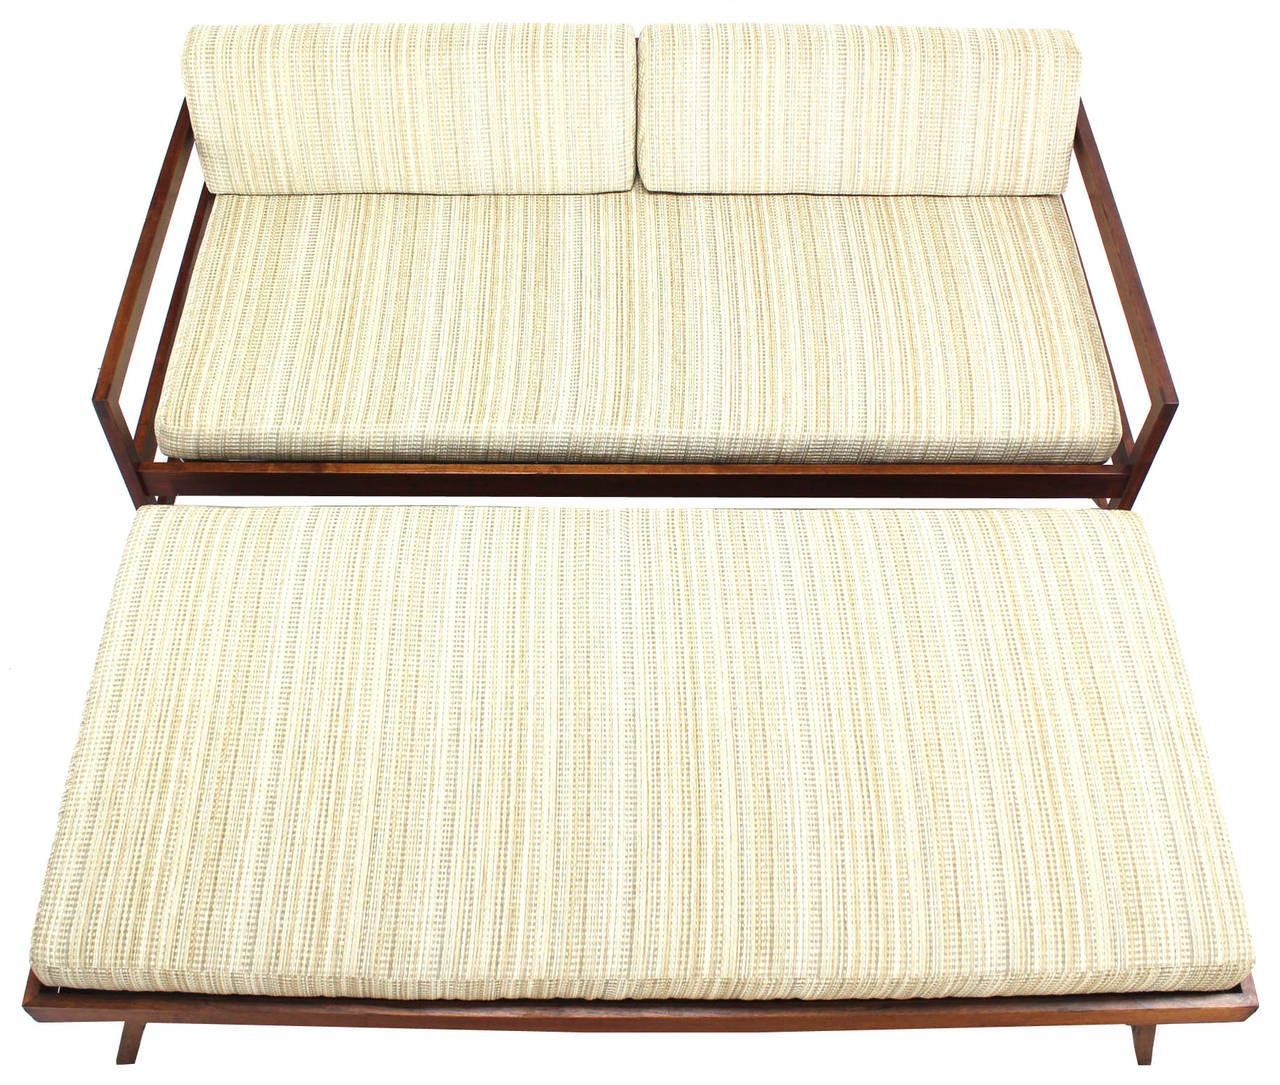 solid walnut frame midcentury modern trundle pullout daybed 2